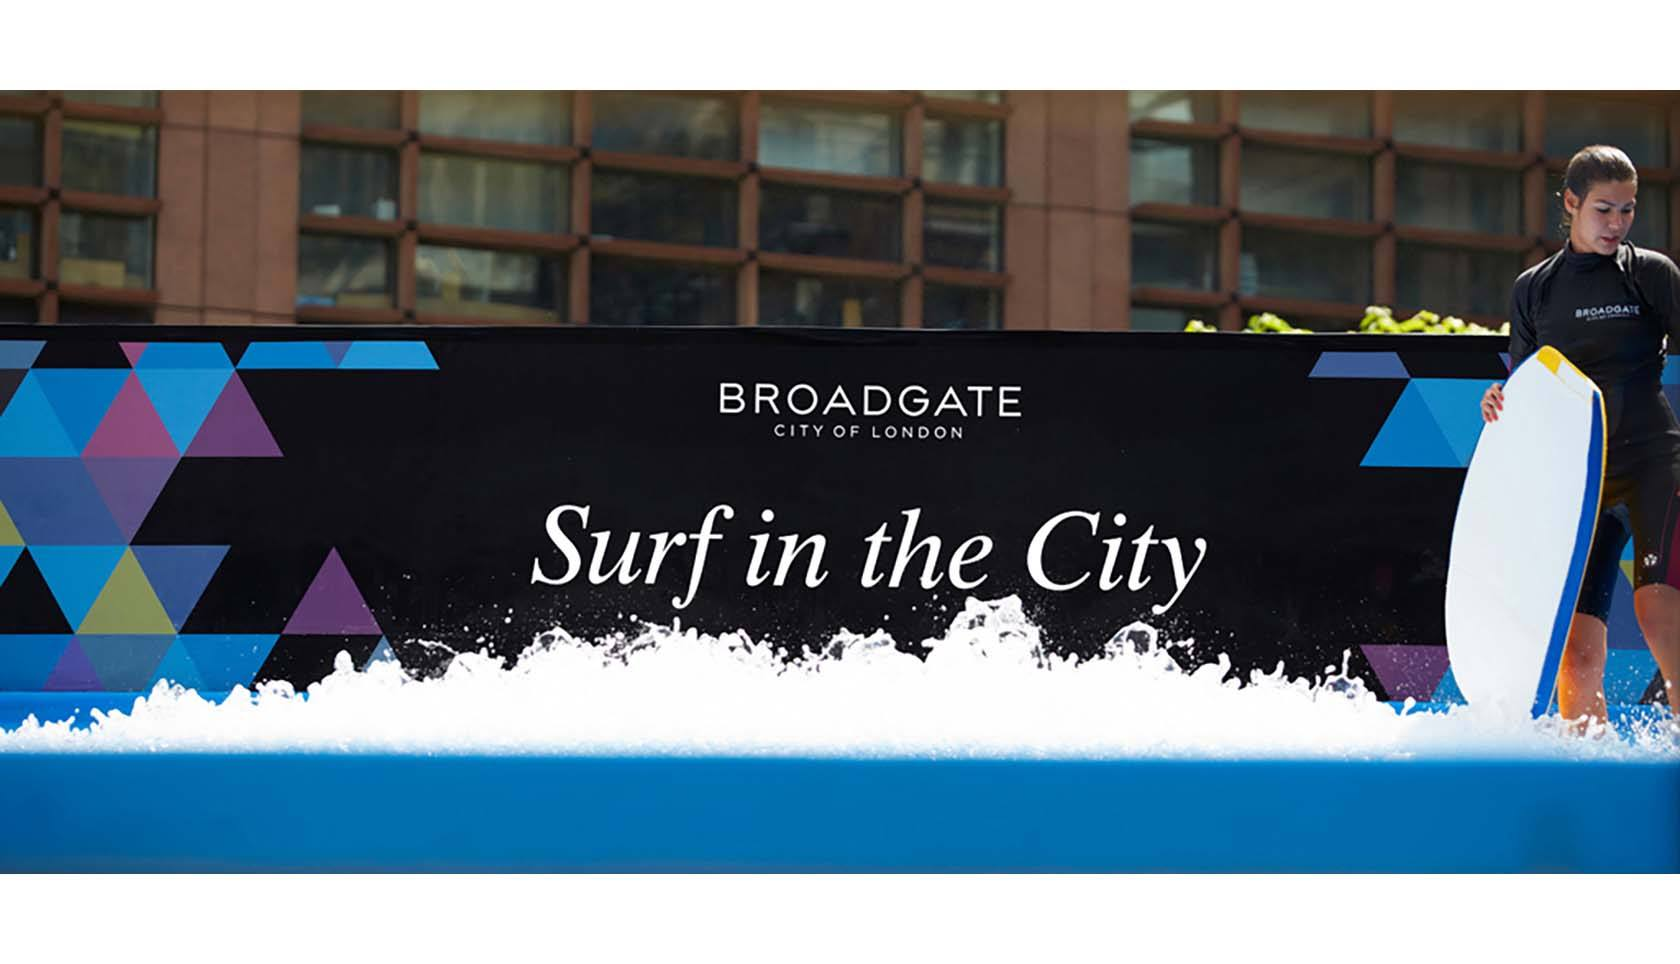 WMH-BROADGATE-BRITISH-LAND-HOARDING-BIG-SURF-WEB image